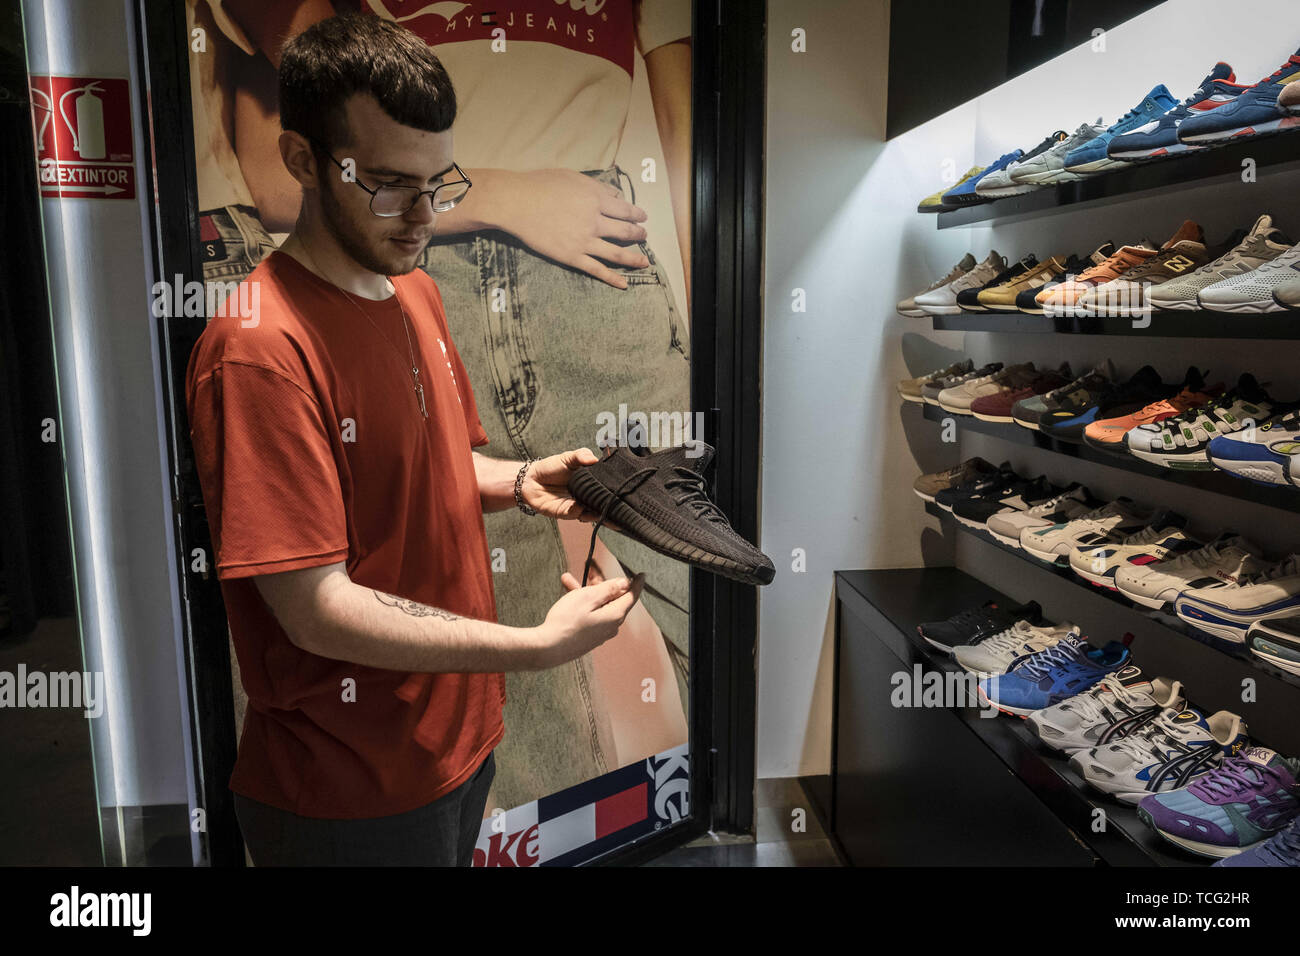 Barcelona, Catalonia, Spain. 7th June, 2019. A seller shows off the new Adidas Yeezy Boost 350 shoe model at the reseller store.The German manufacturer of sports shoes Adidas has launched the limited edition of the Yeezy Boost 350 sports shoe model designed by rapper Kanye West. The limited production of this model has made many young people crowd in front of stores and resellers to be one of the lucky ones. Credit: Paco Freire/SOPA Images/ZUMA Wire/Alamy Live News - Stock Image